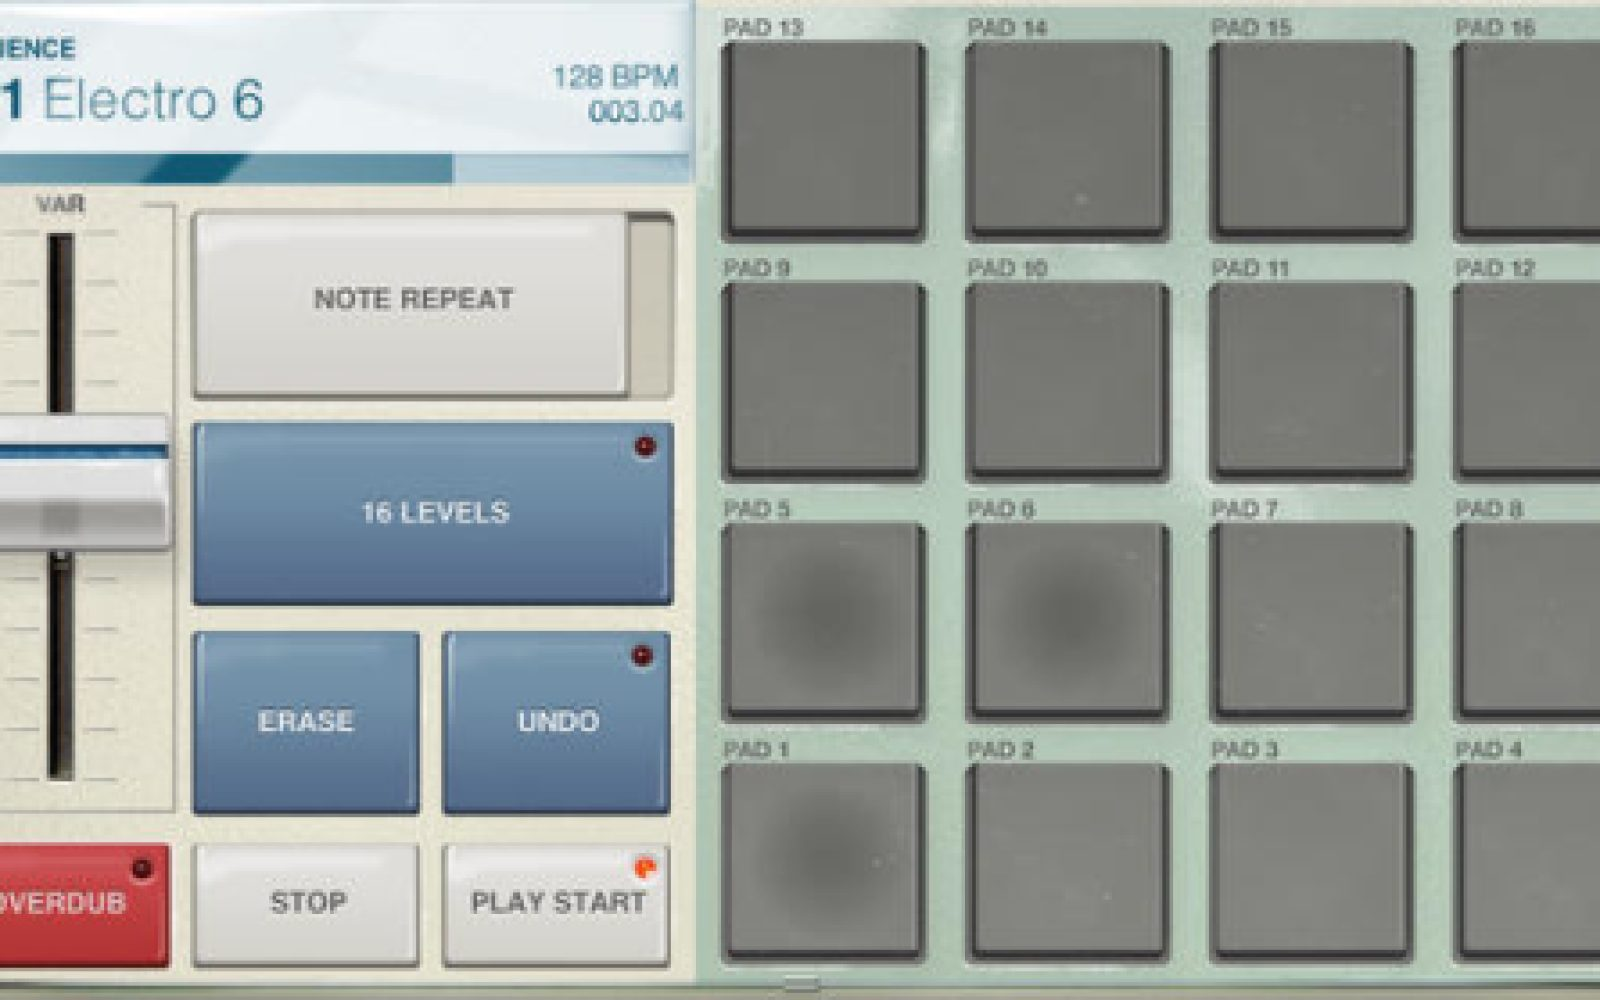 Akai's legendary MPC drum machine now available for iPhone